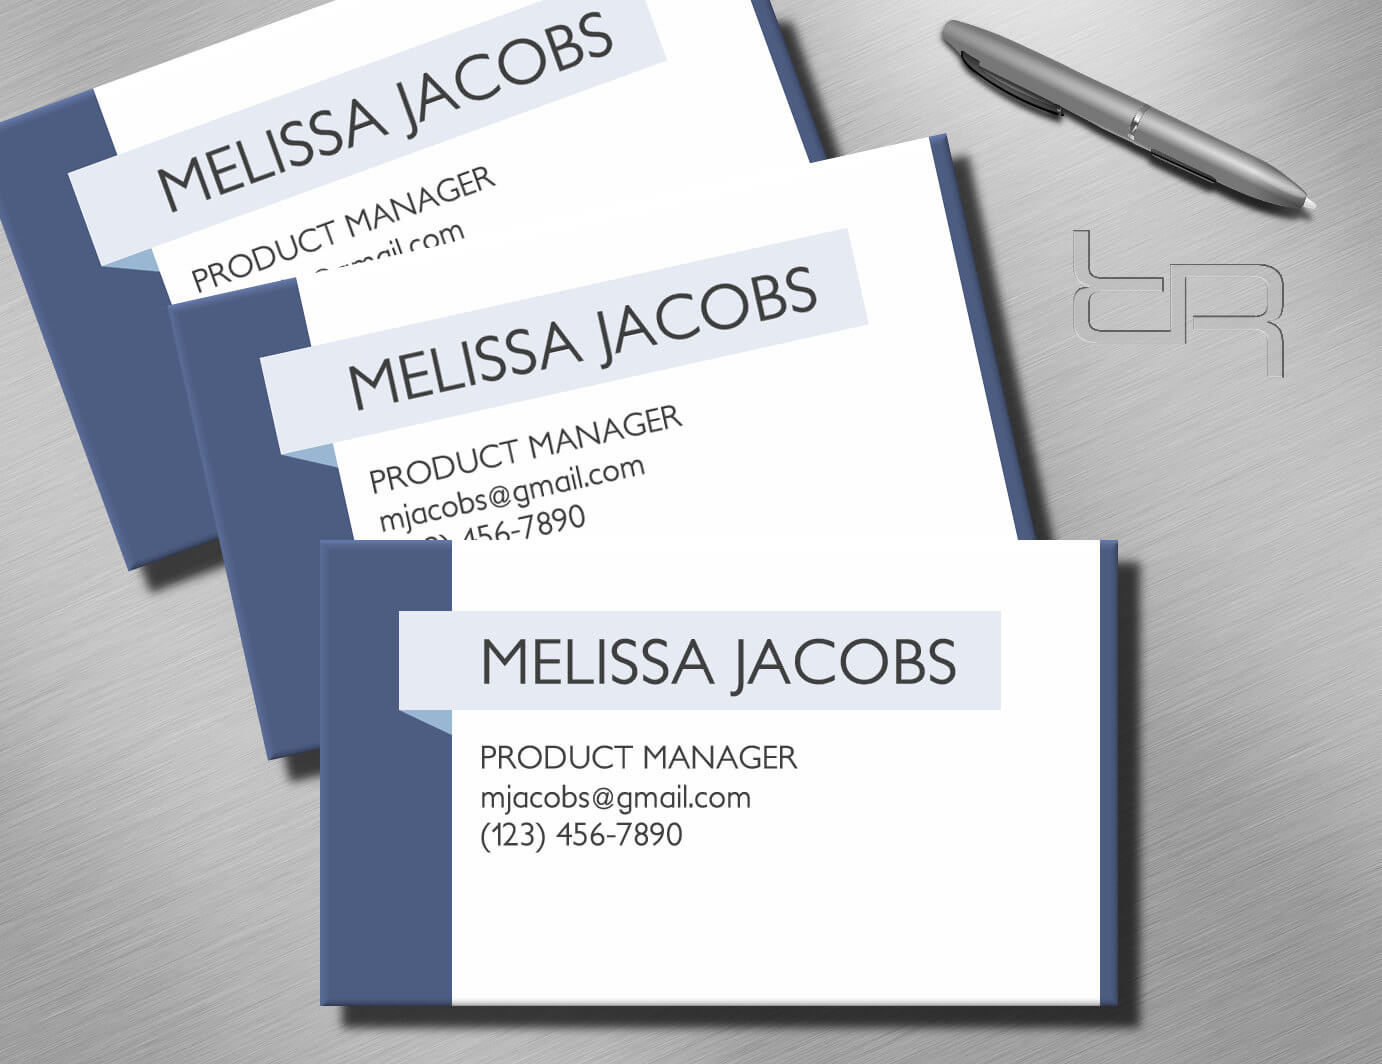 Southworth Business Card Template ] - Printingforless Com Throughout Southworth Business Card Template